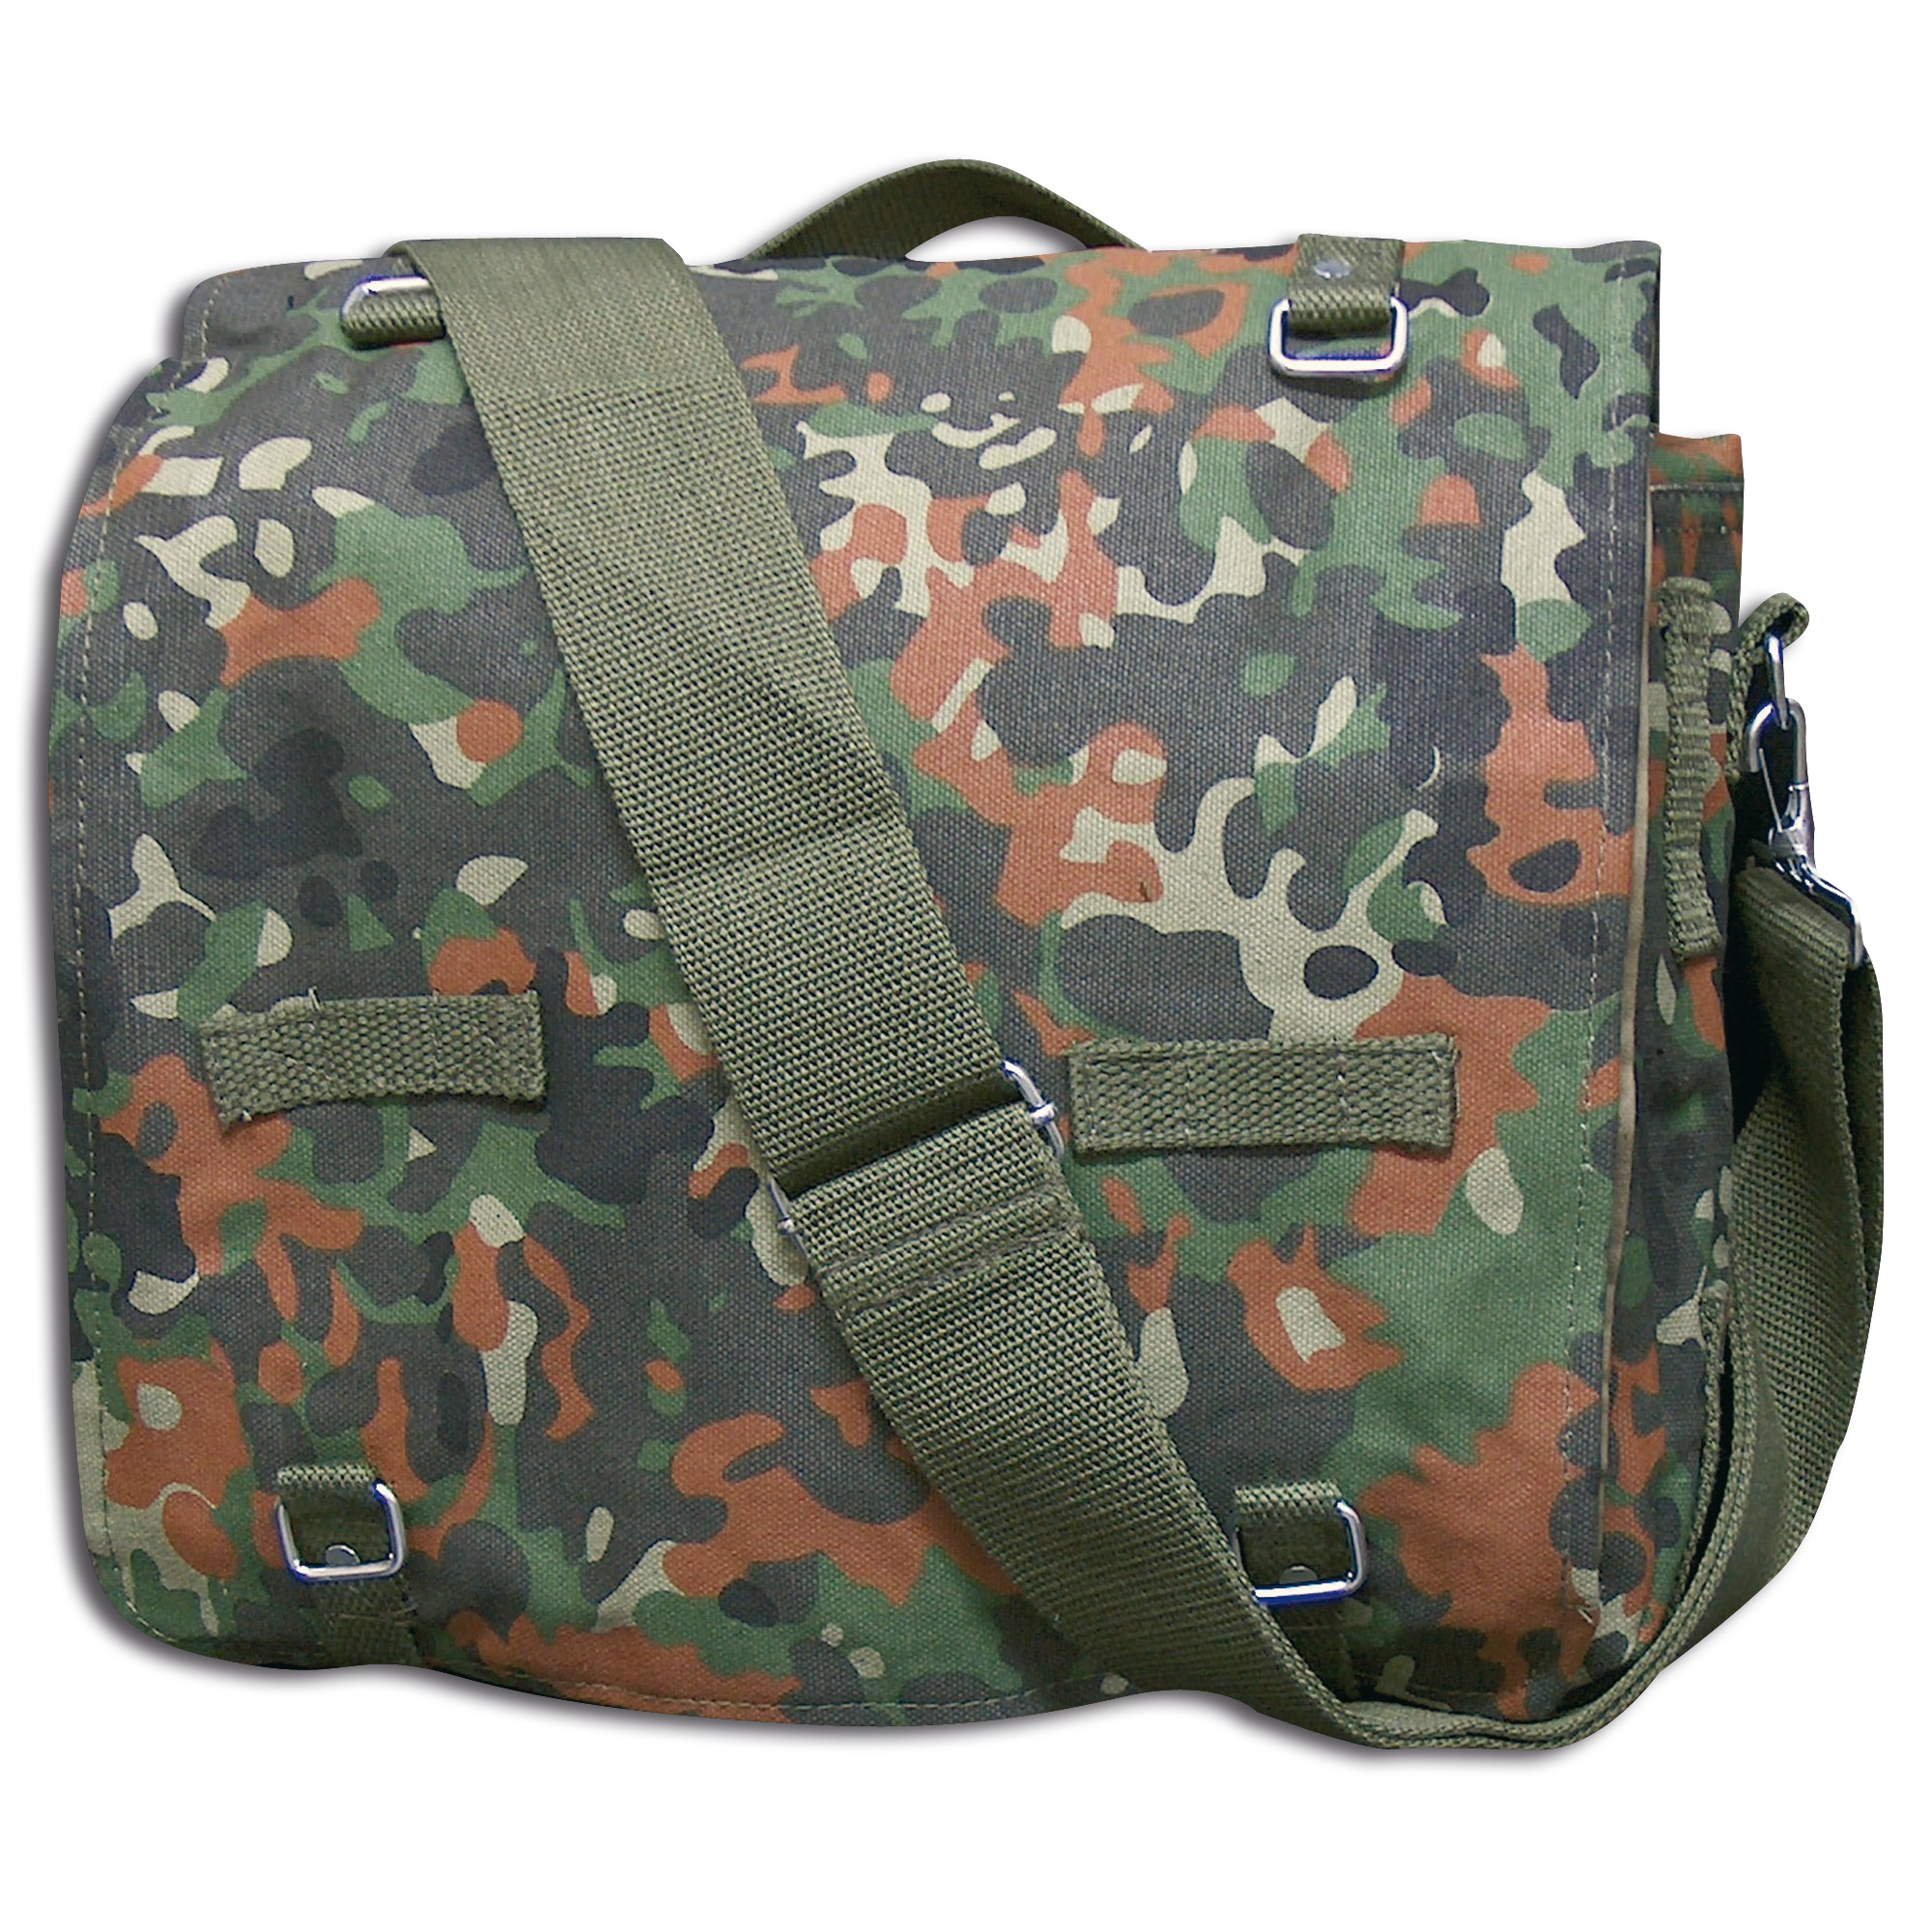 German Military Bag flecktarn